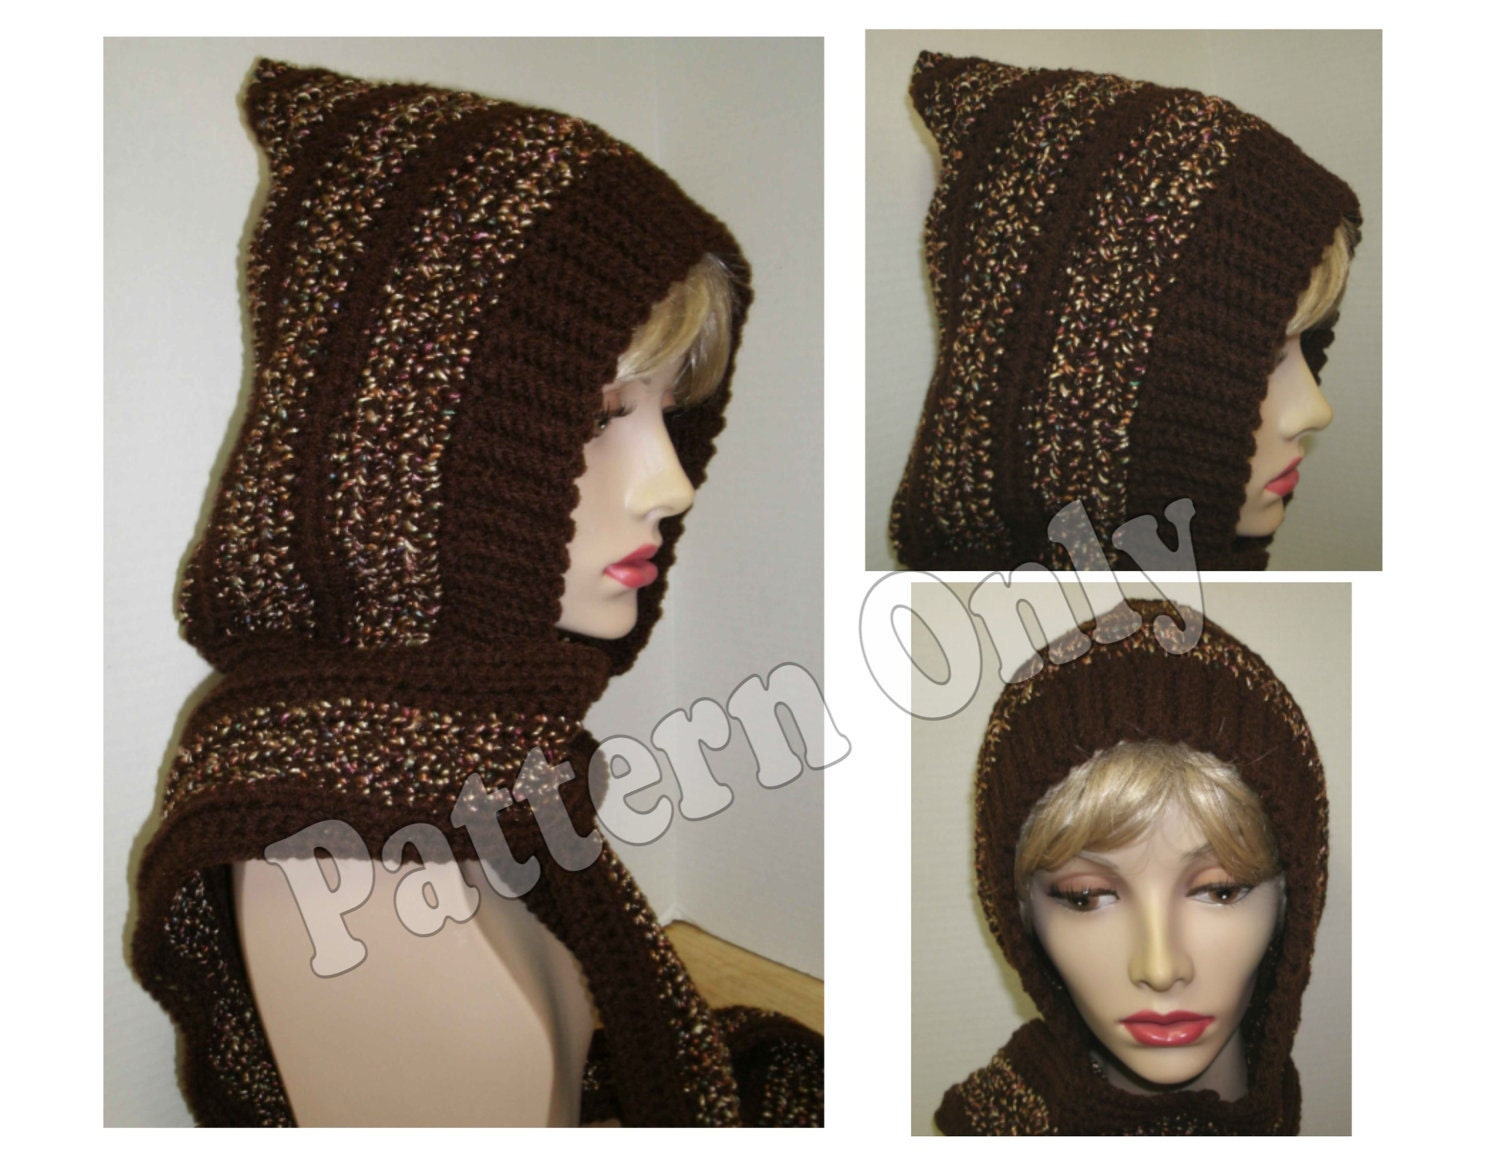 Free crochet pattern for hat with attached scarf all about hat scarf combo etsy source zoom zoom crochet pattern adult size skoodie hood bankloansurffo Images